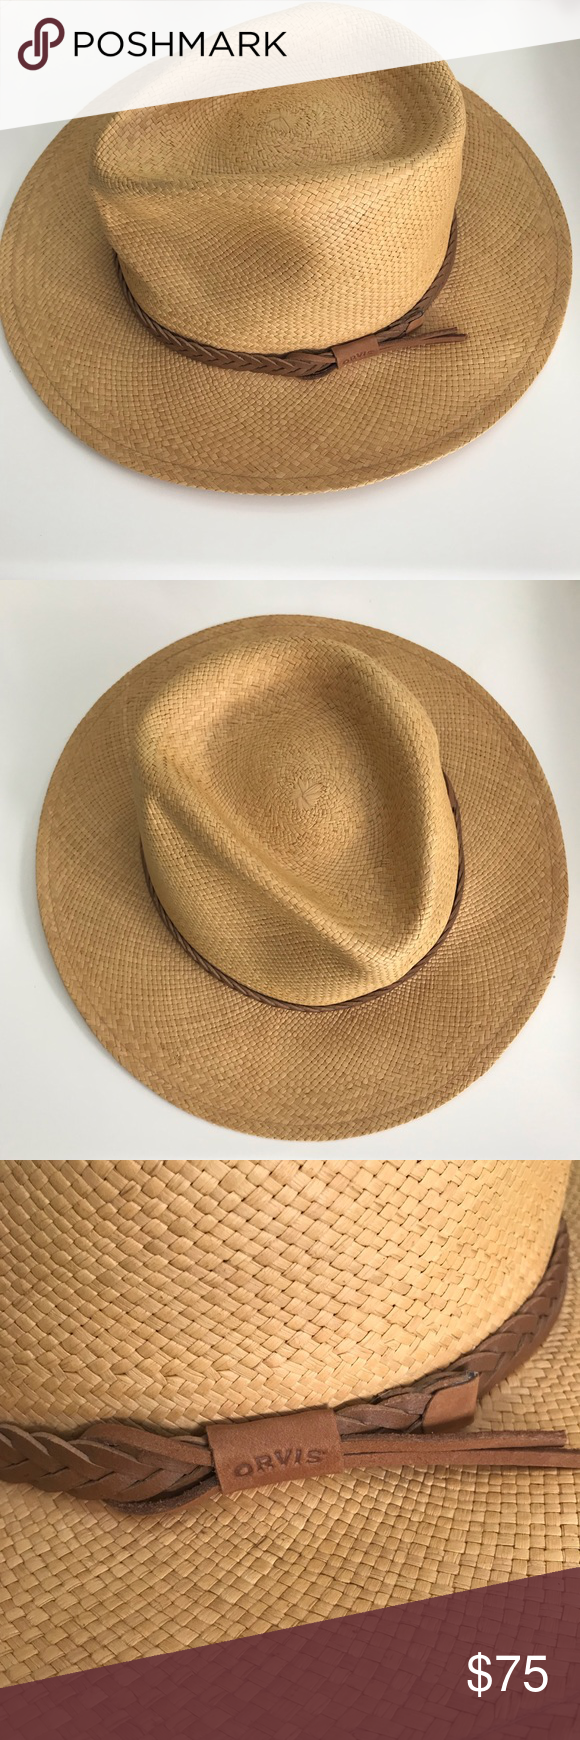 New Orvis Panama Braided Leather Straw Hat L Xl Braided Leather Orvis Straw Hat